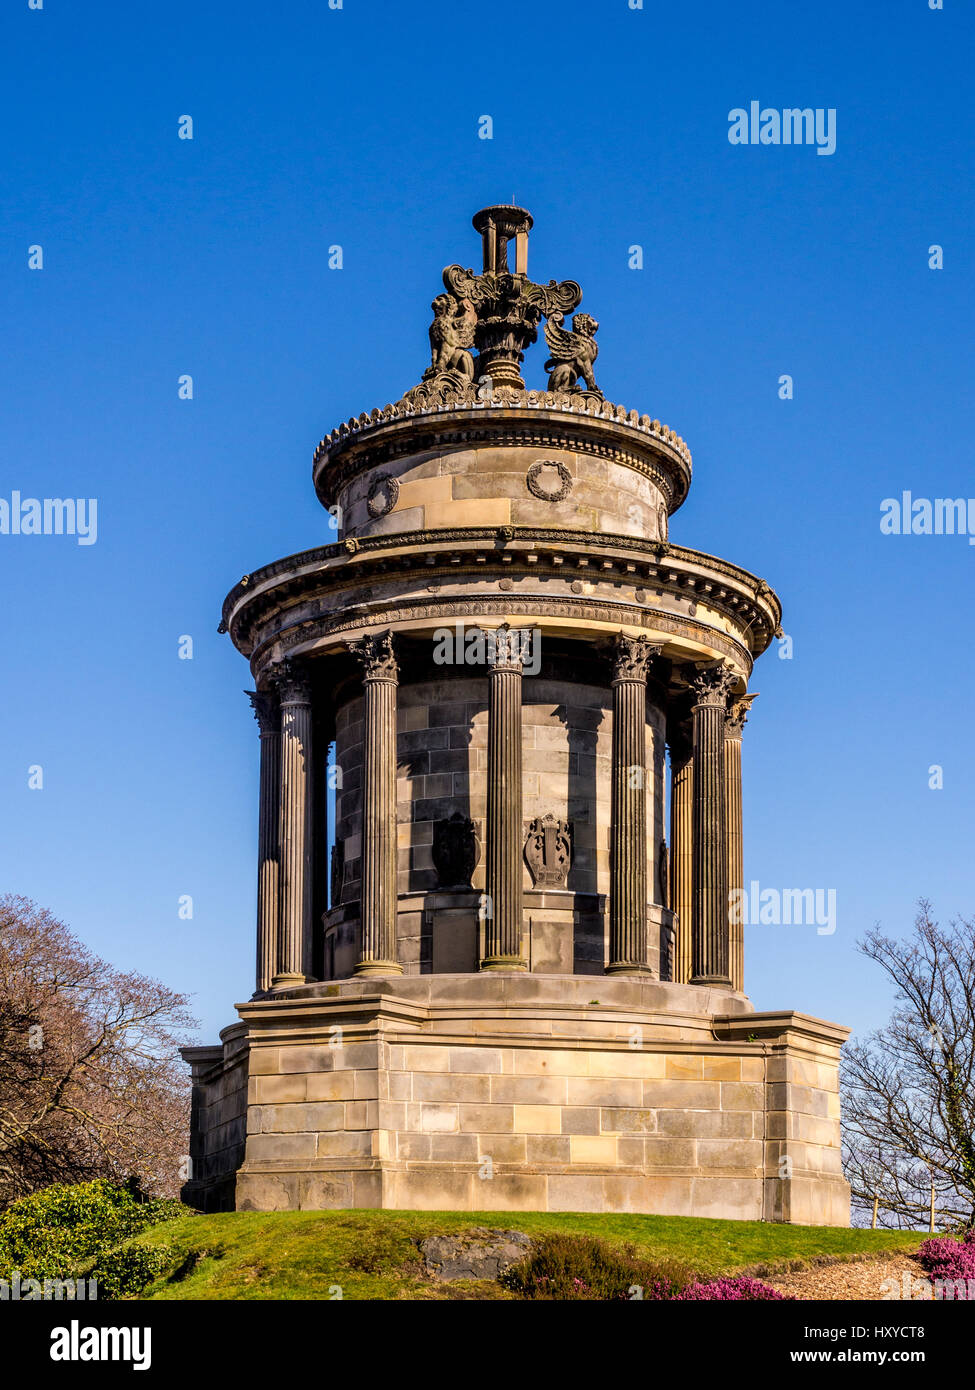 The Burns monument. A small, circular temple in the Neo-Greek style typical of Georgian era Edinburgh, constructed Stock Photo